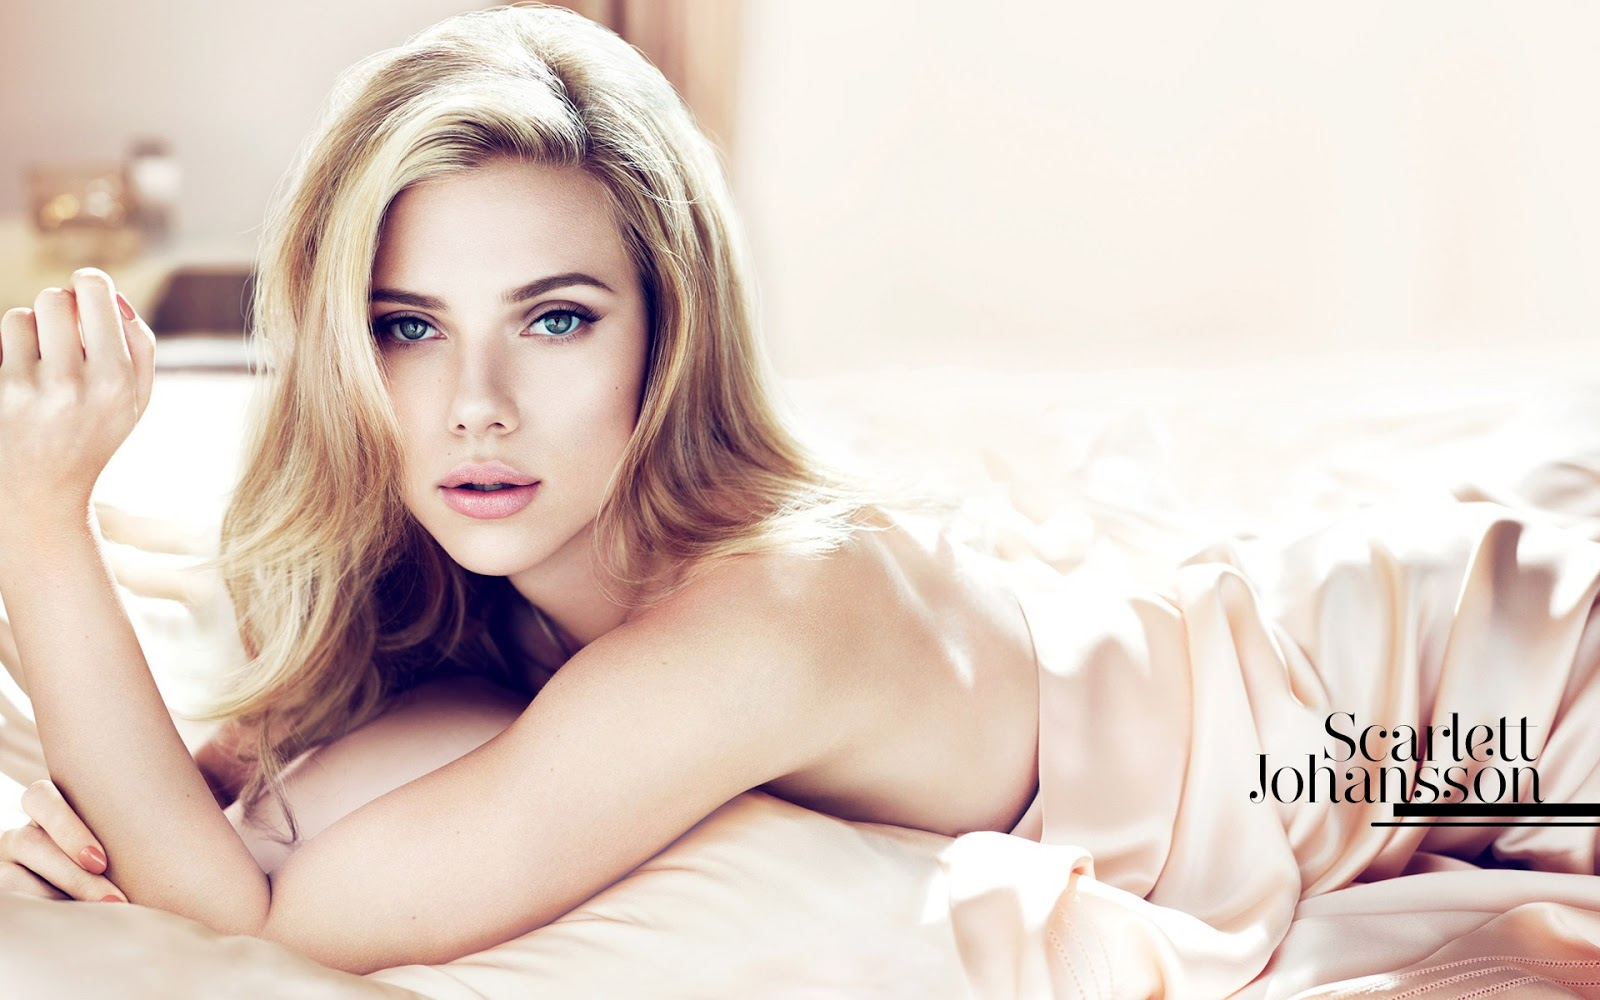 Hindi Movie Wallpapers With Quotes Scarlett Johansson Hollywood Actress Hot And Sexy